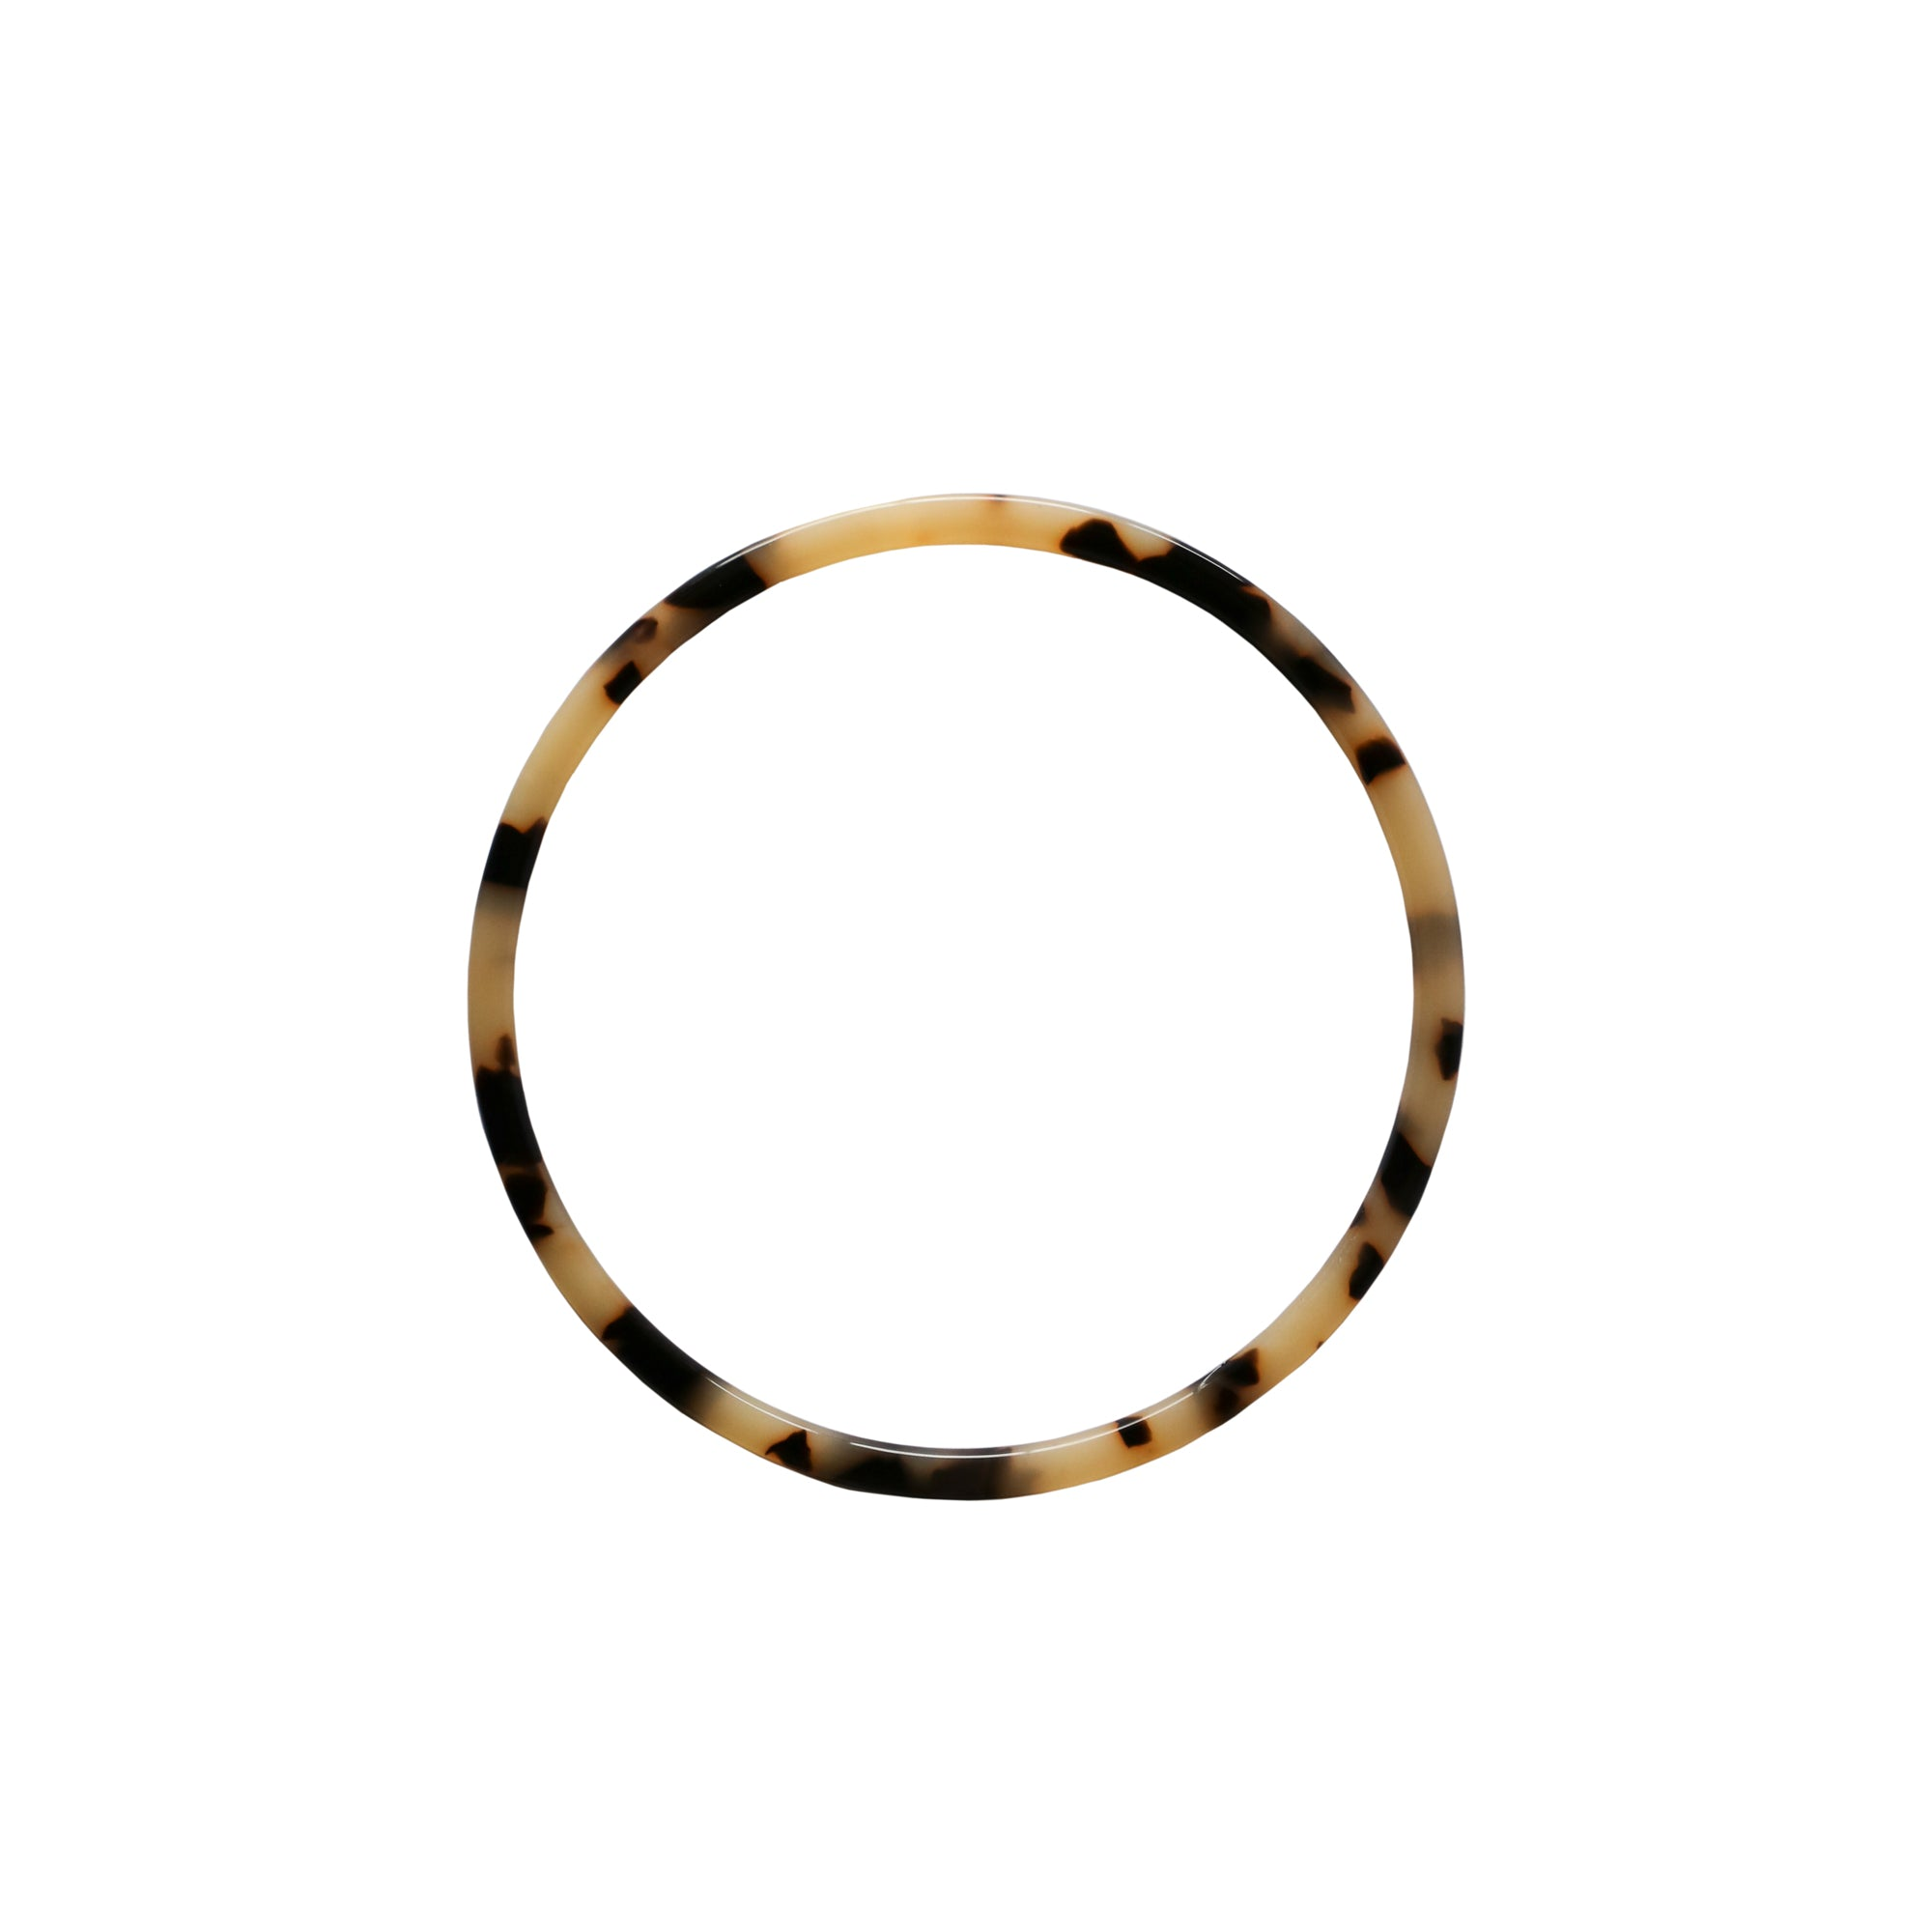 Sophie - Torty Bangle - Light - Jewellery - NZ